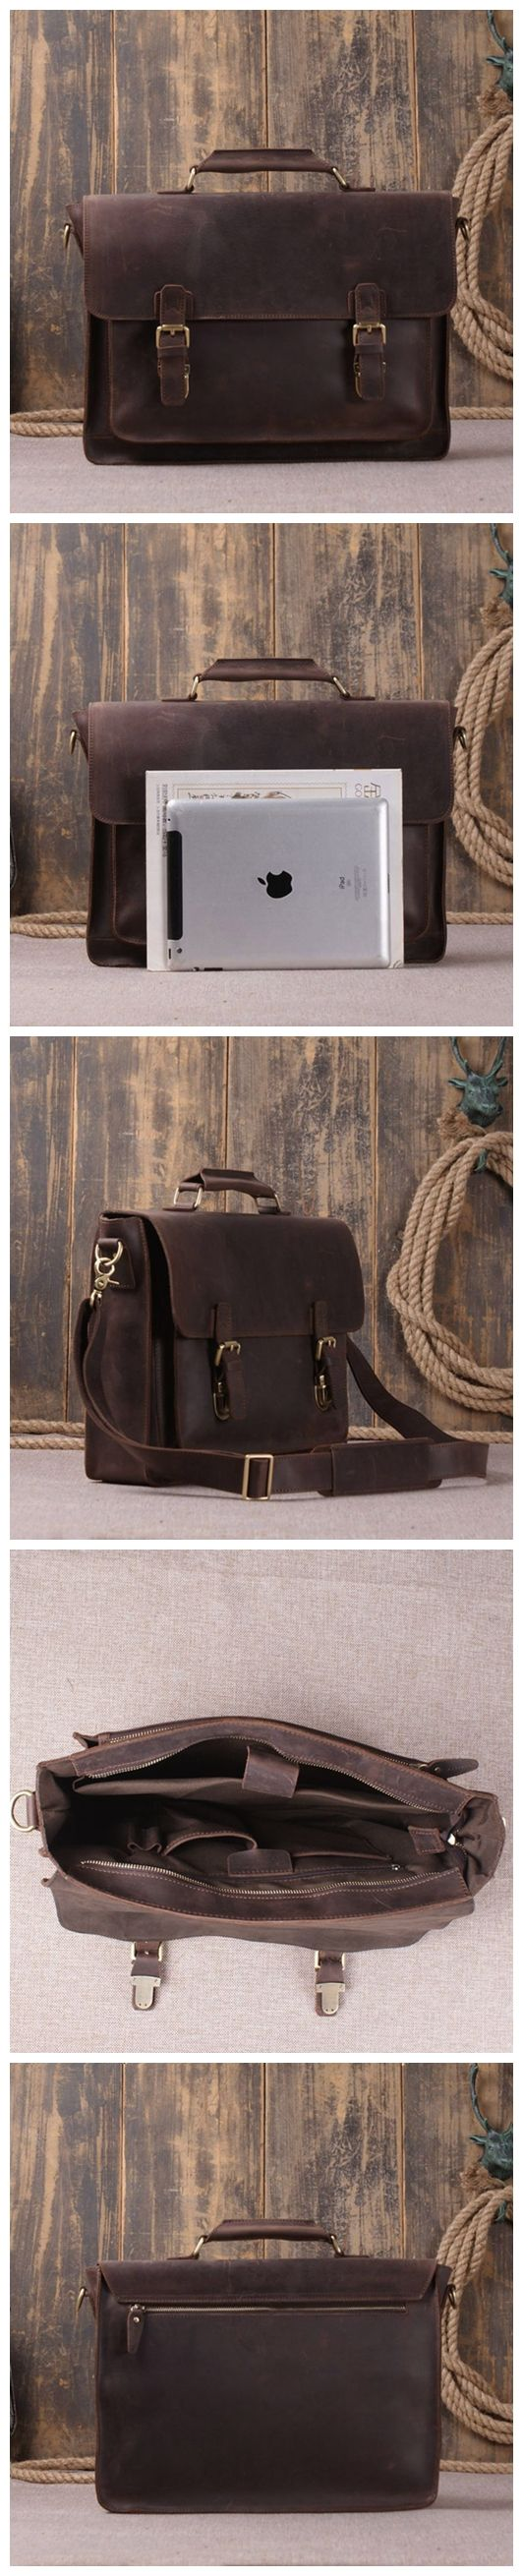 15'' HANDMADE VINTAGE GENUINE LEATHER BRIEFCASE MESSENGER BAG LAPTOP BAG MEN'S HANDBAG LEATHER HANDMADE BAG MEN FASHION MEN'S GIFT